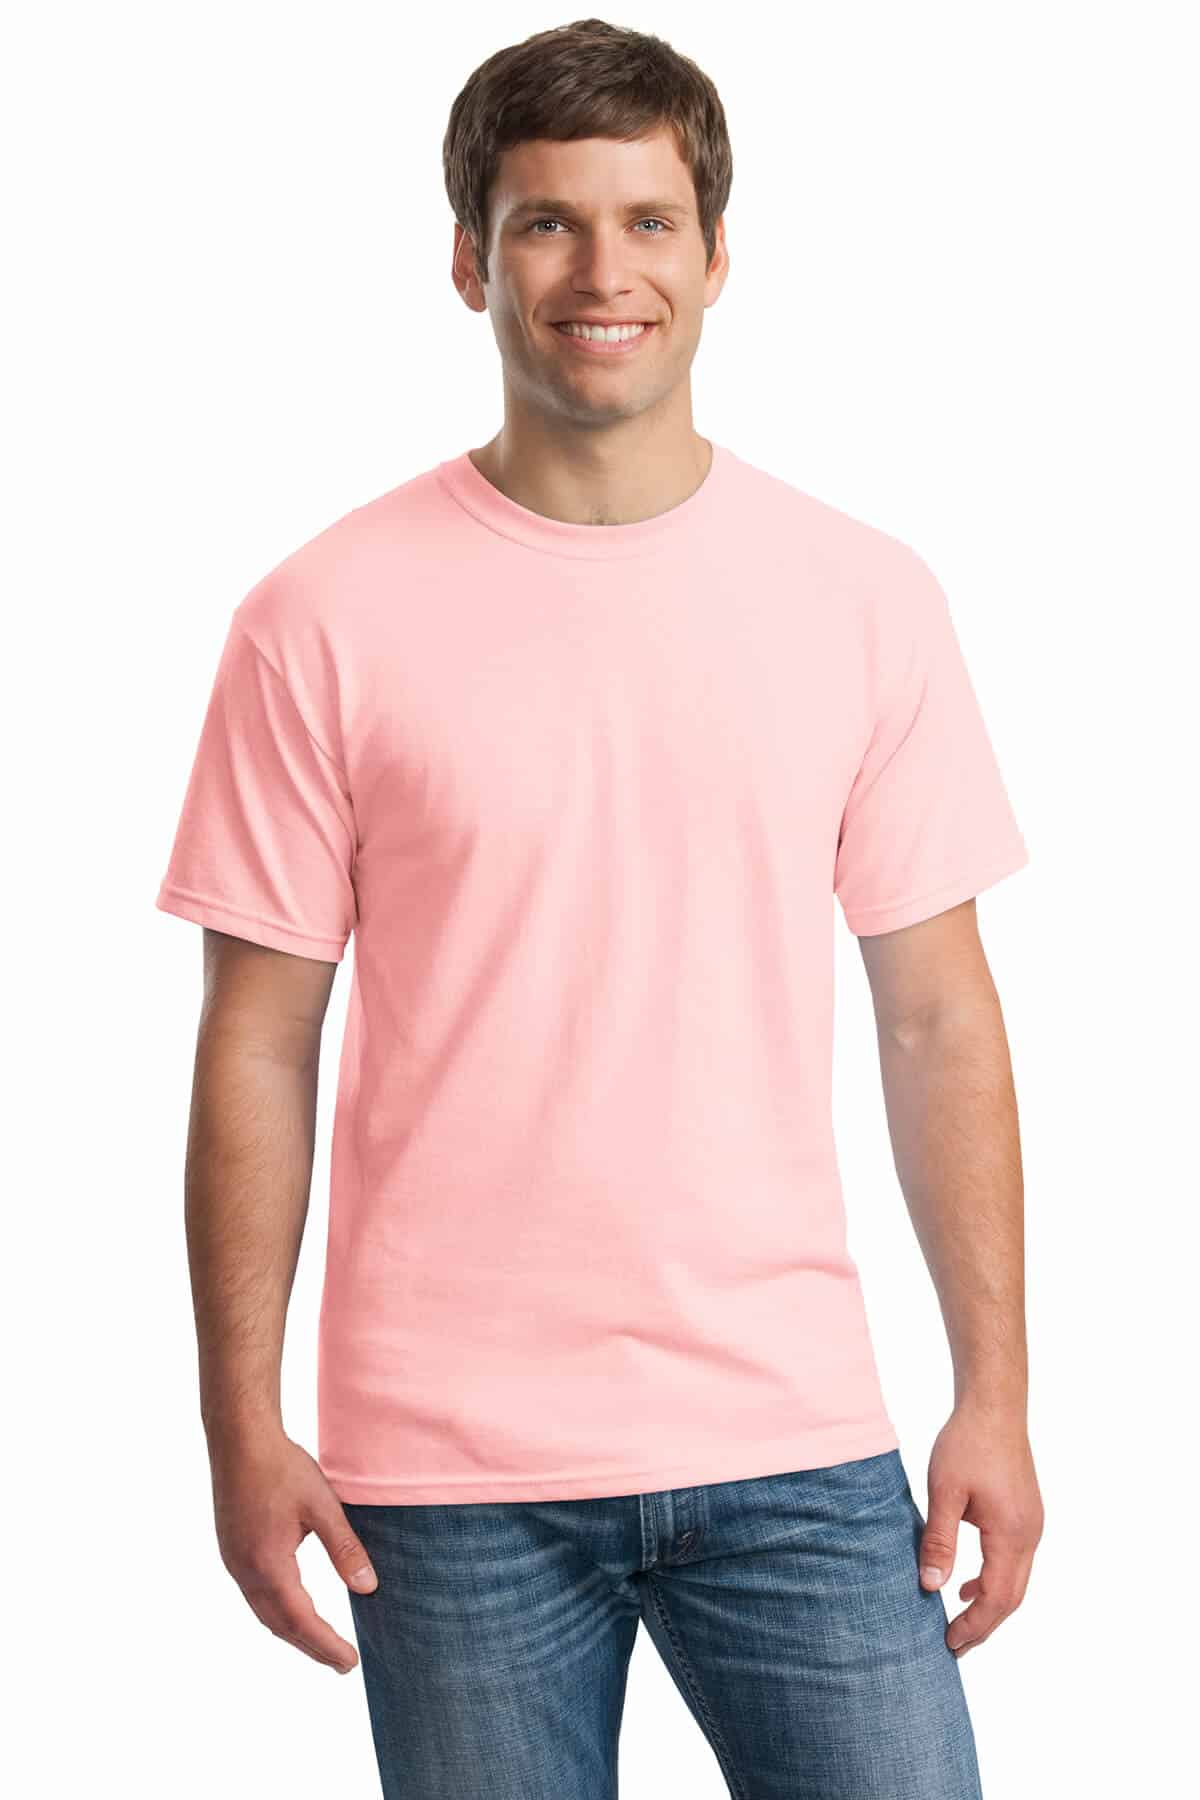 Light Pink Tee Front